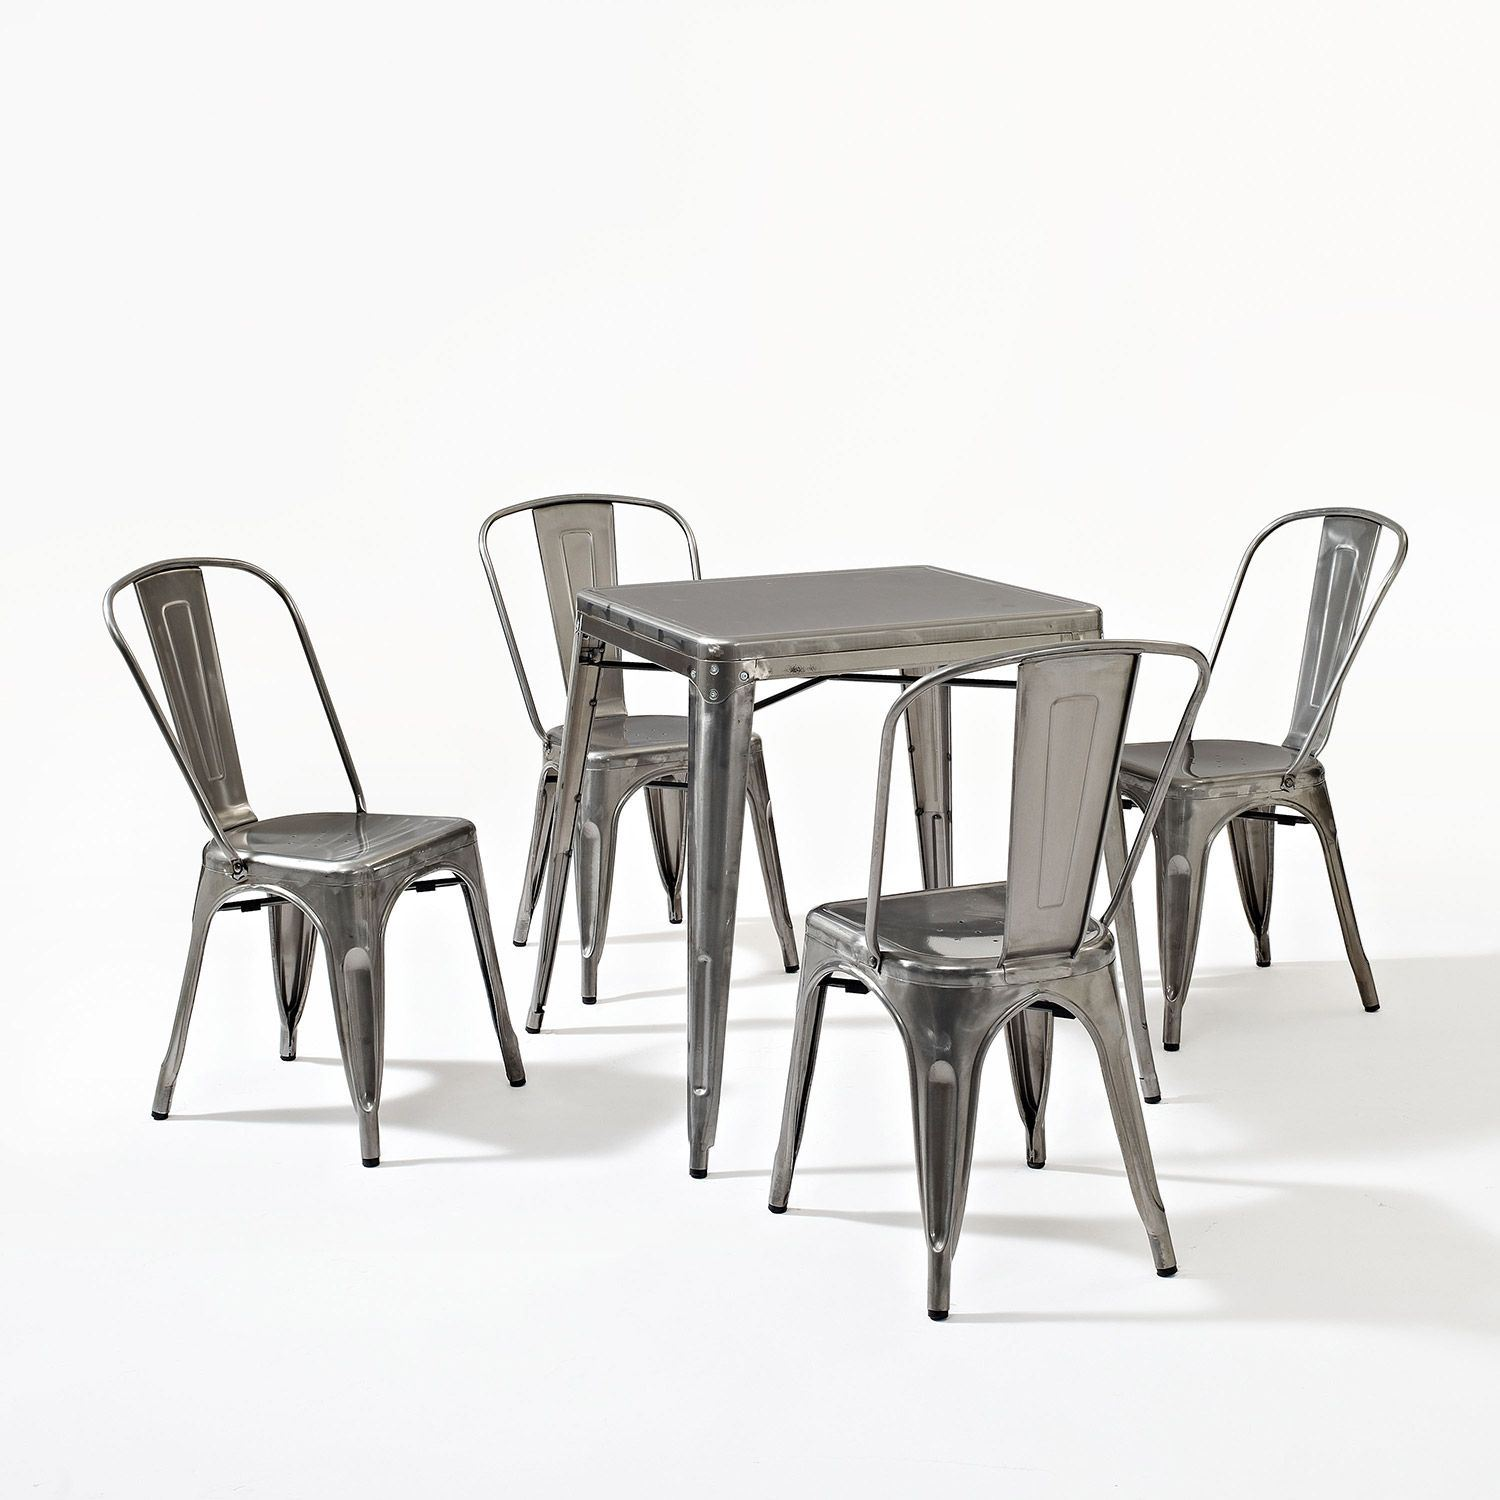 ... Picture Of Amelia 5 Piece Metal Cafe Dining Set, ...